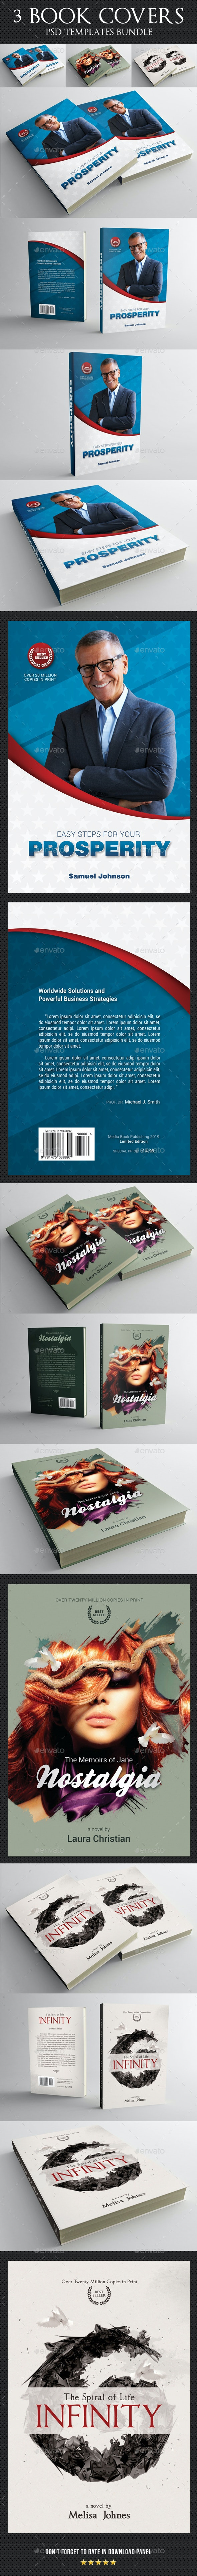 3 in 1 Book Cover Template Bundle 15 - Miscellaneous Print Templates